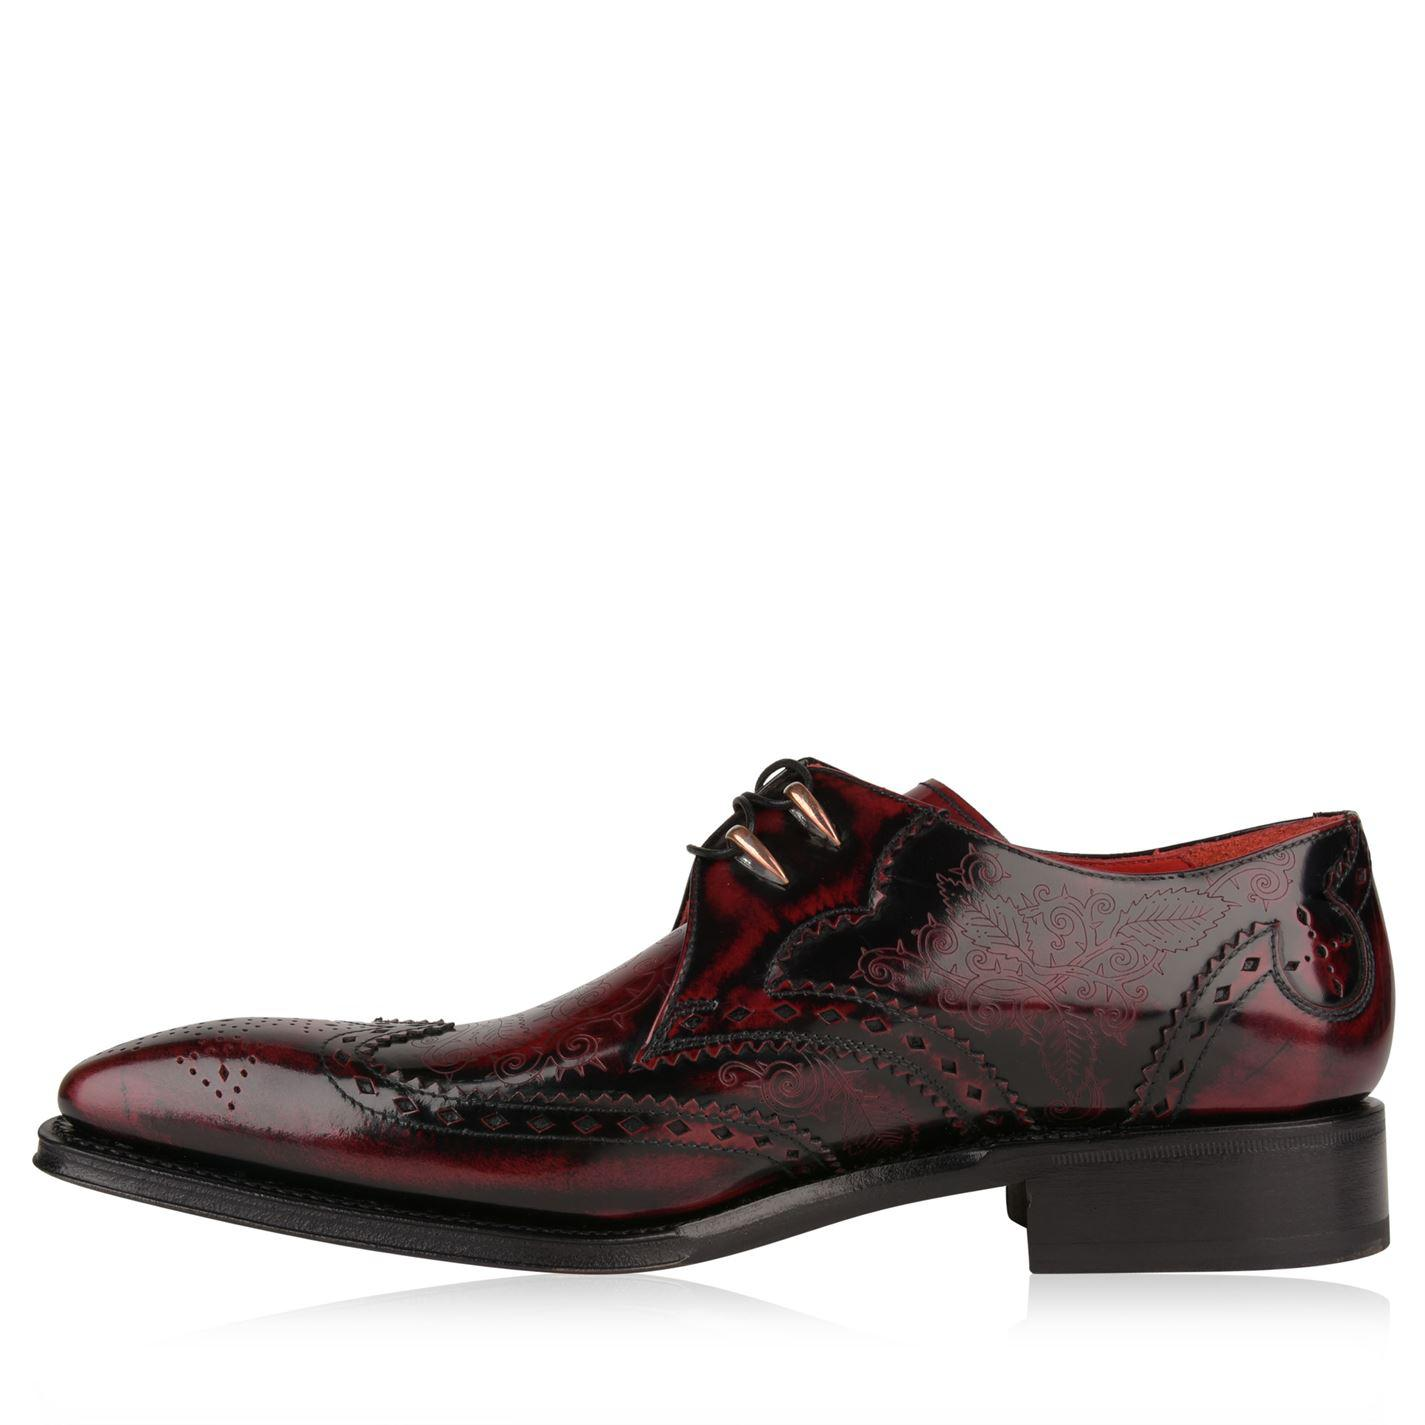 Jeffery West Leather Razor Wing Tip Brogues in Burgundy (Brown) for Men